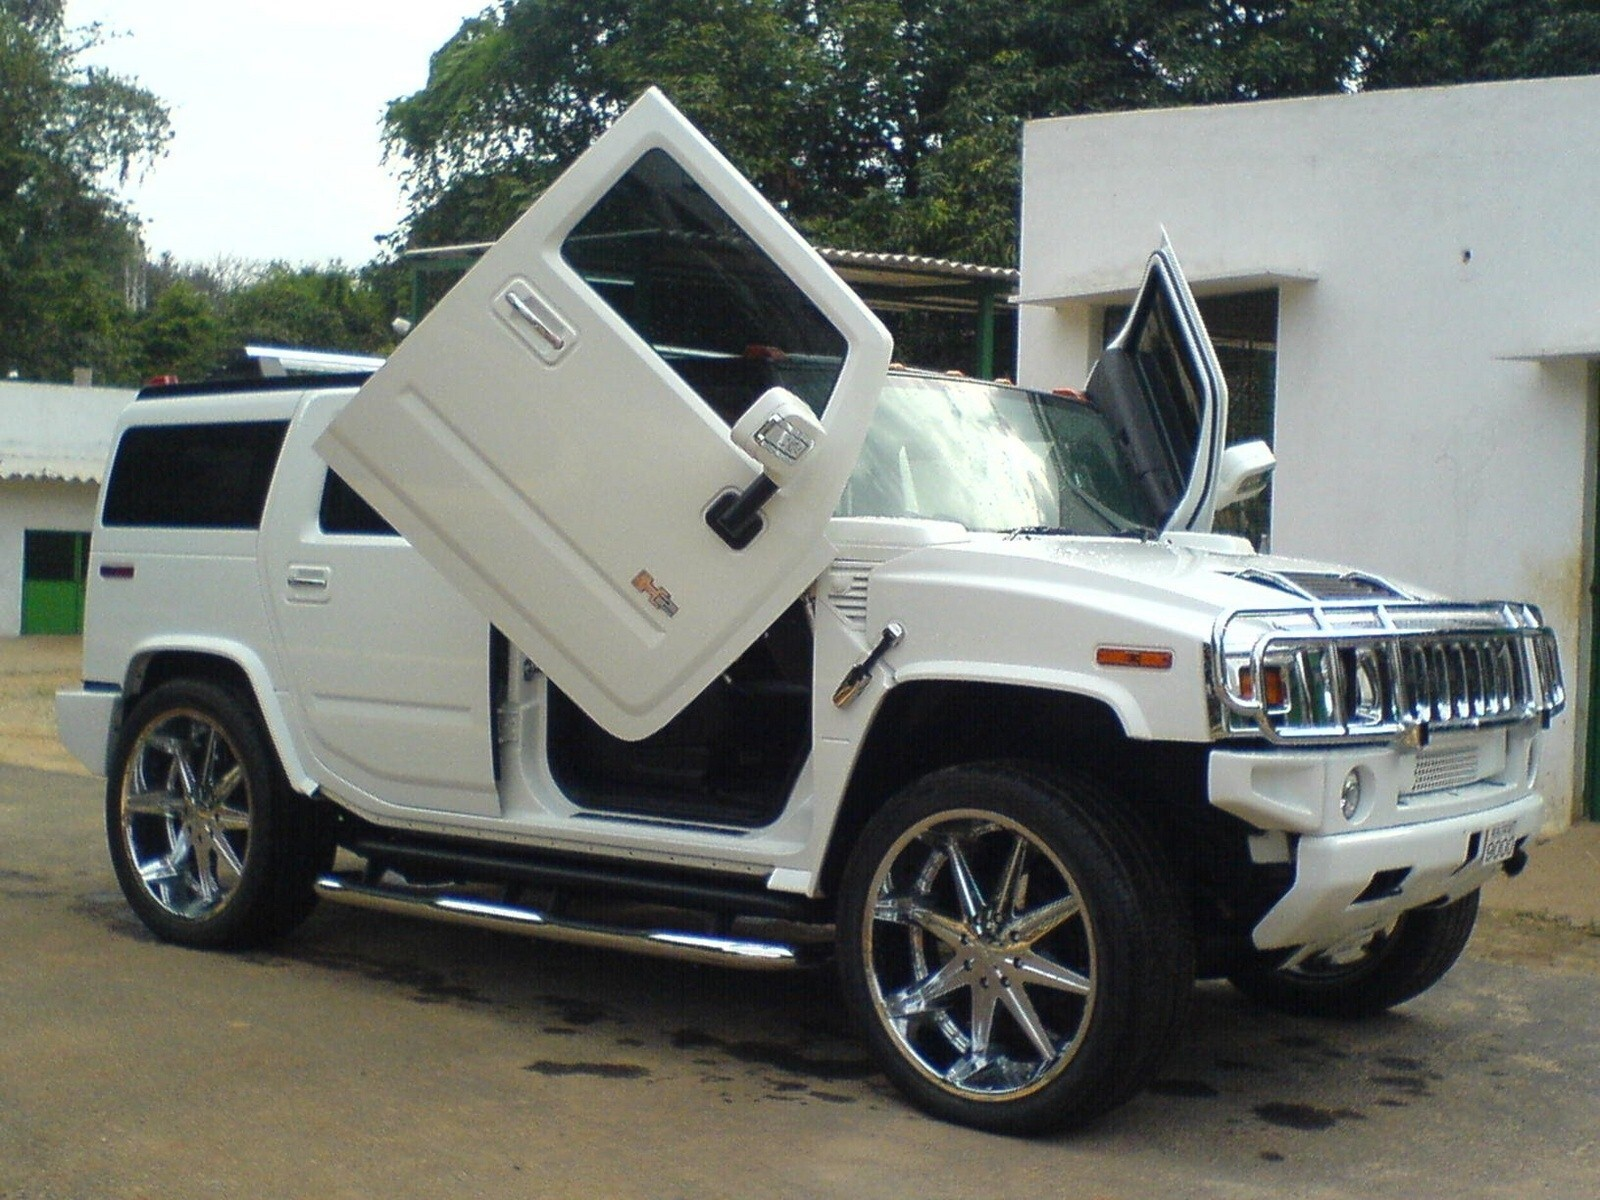 White h2 hummer car wallpapers download hd wallpapers white h2 hummer car wallpapers download voltagebd Gallery